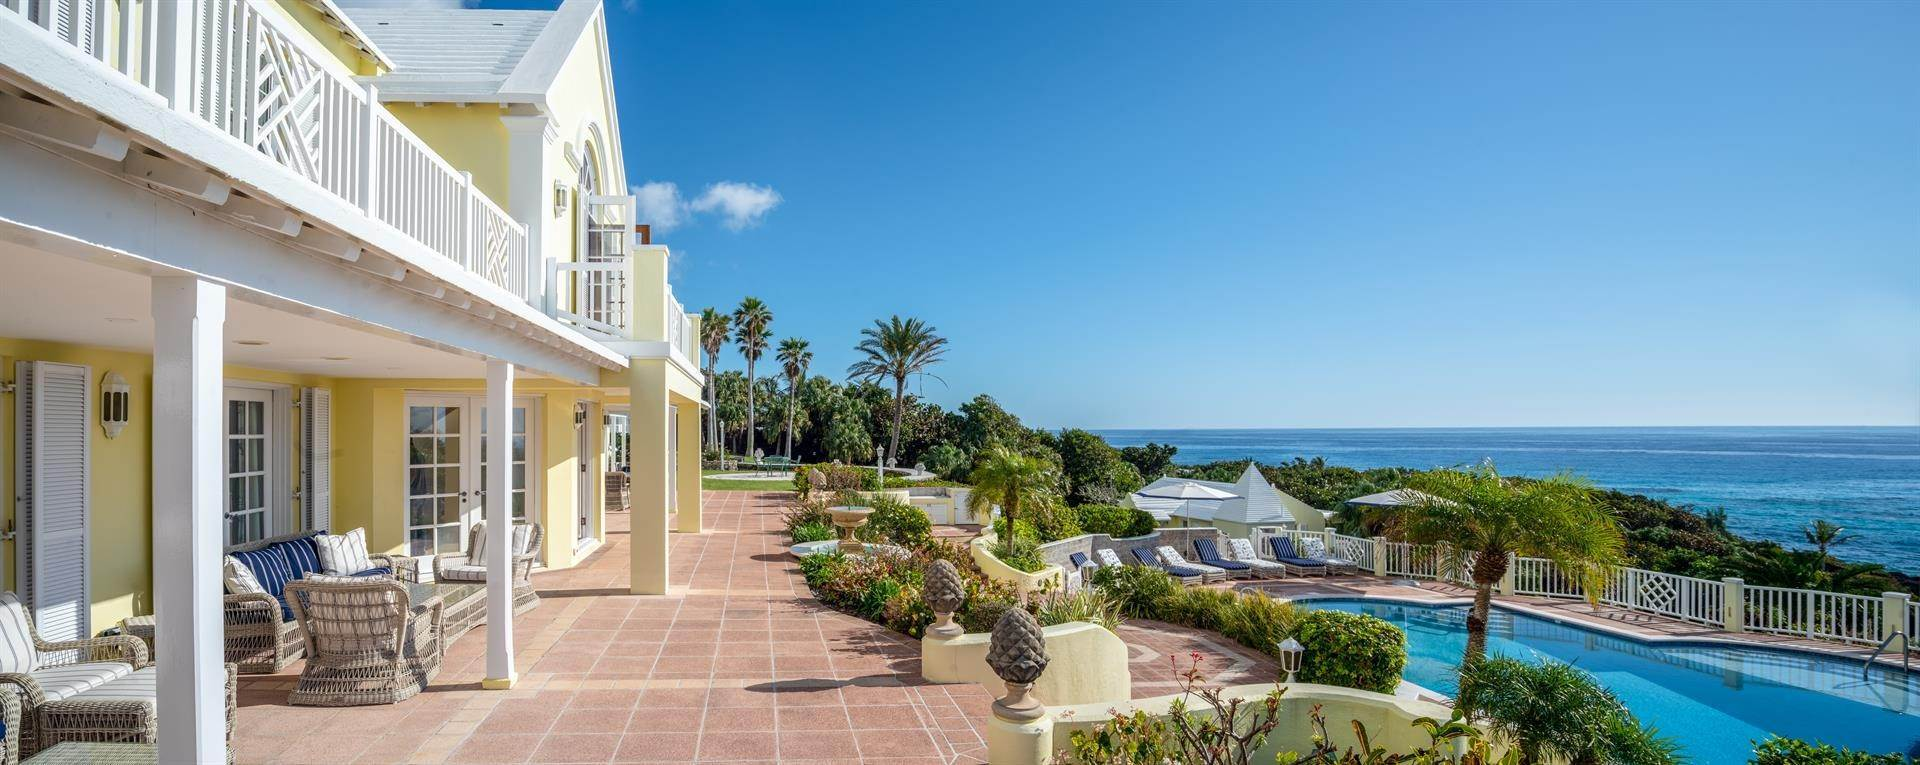 31. Waterfront Property for Sale at Agapanthus On Grape Bay Agapanthus On Grape Bay, 11 Inglewood Lane,Bermuda – Sinclair Realty